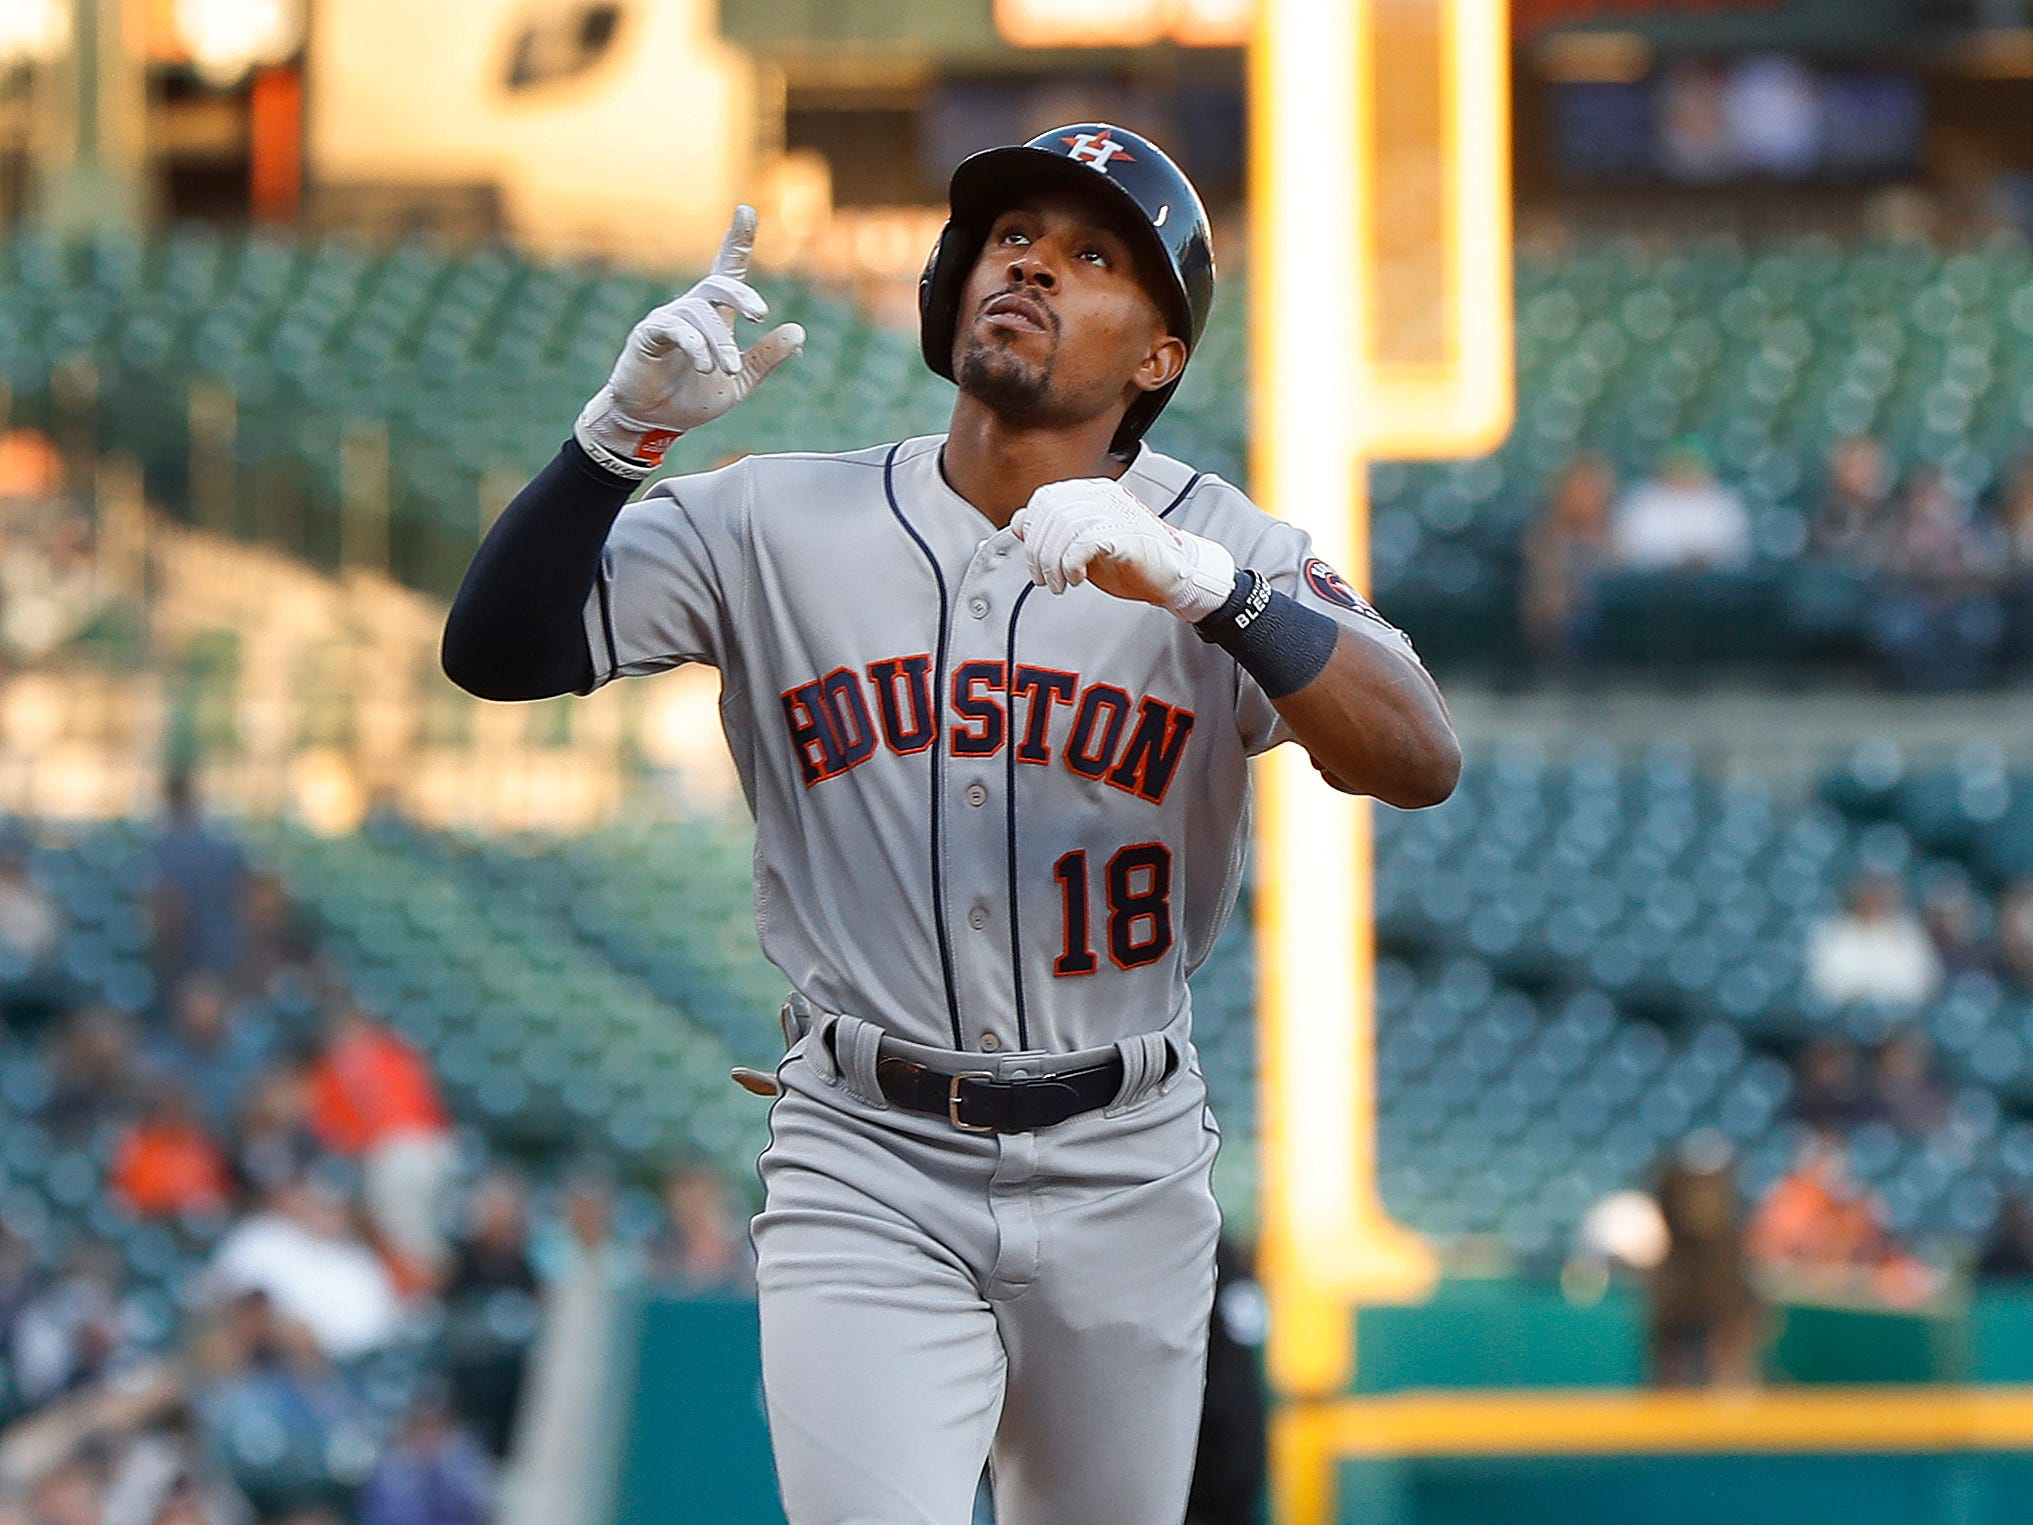 Houston Astros' Tony Kemp celebrates his two-run home run in the second inning.